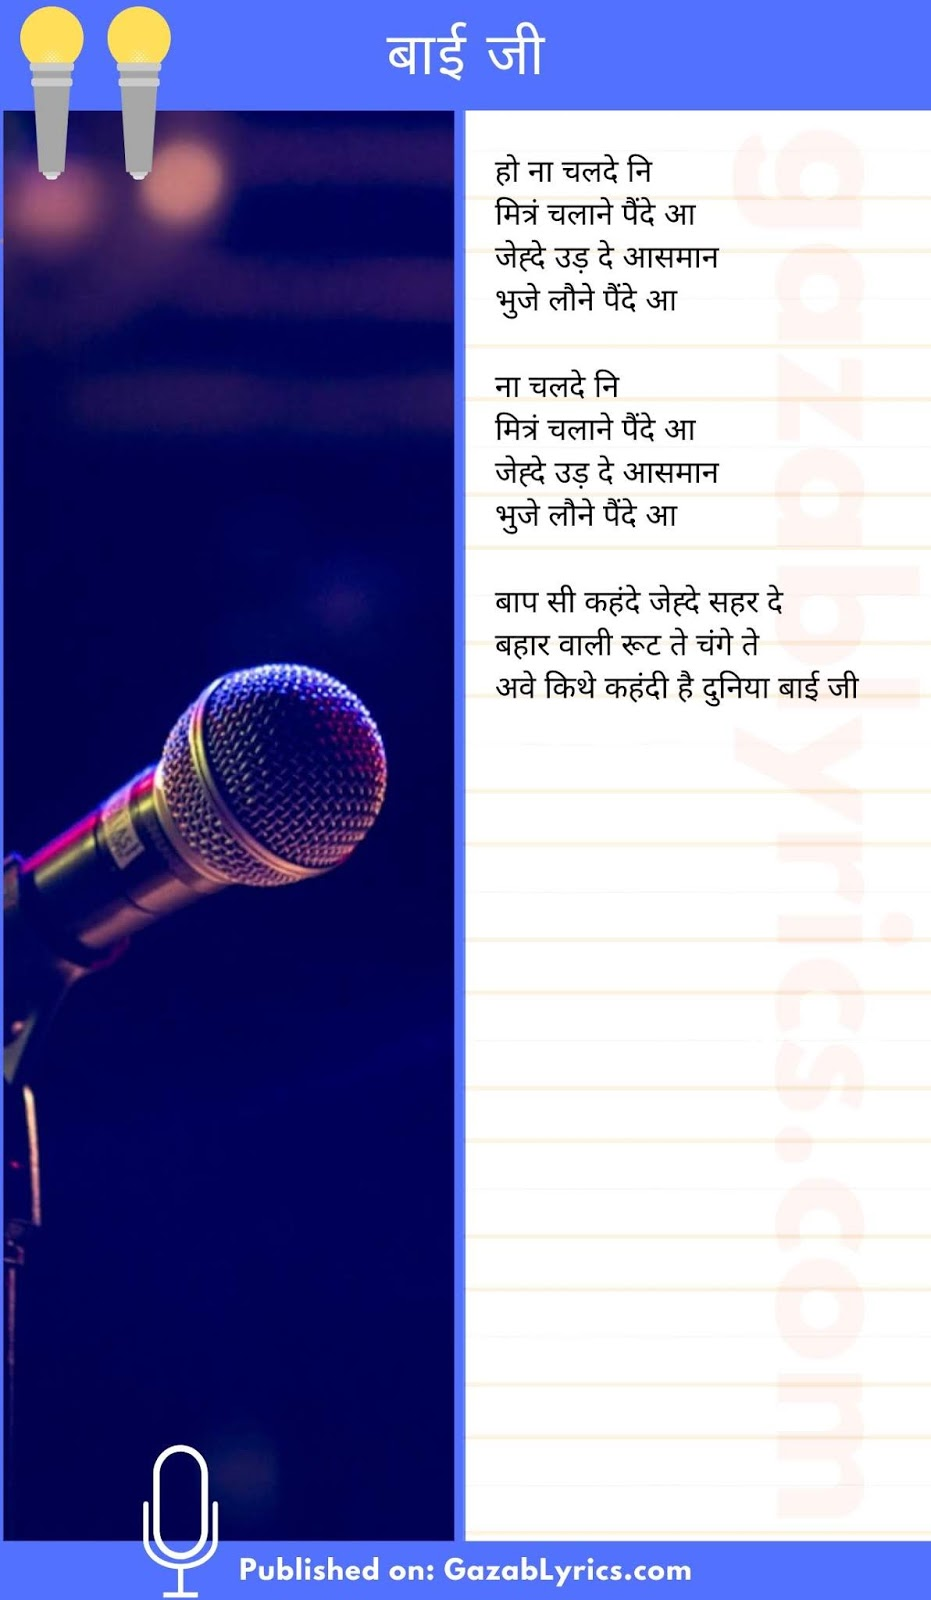 Bai Ji song lyrics image